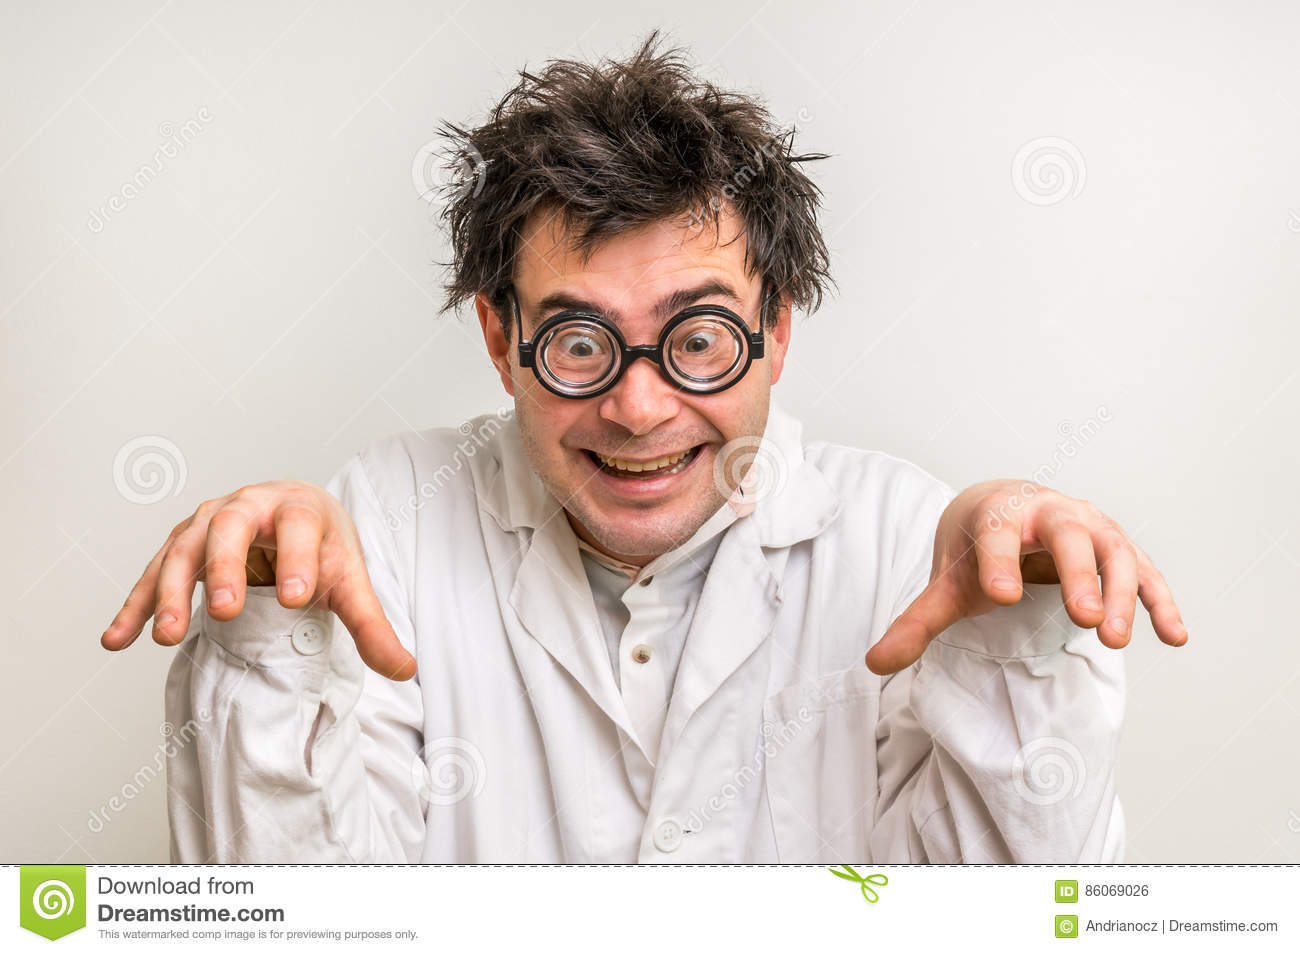 Crazy Scientist With Glasses And White Coat Stock Photo - Image ...